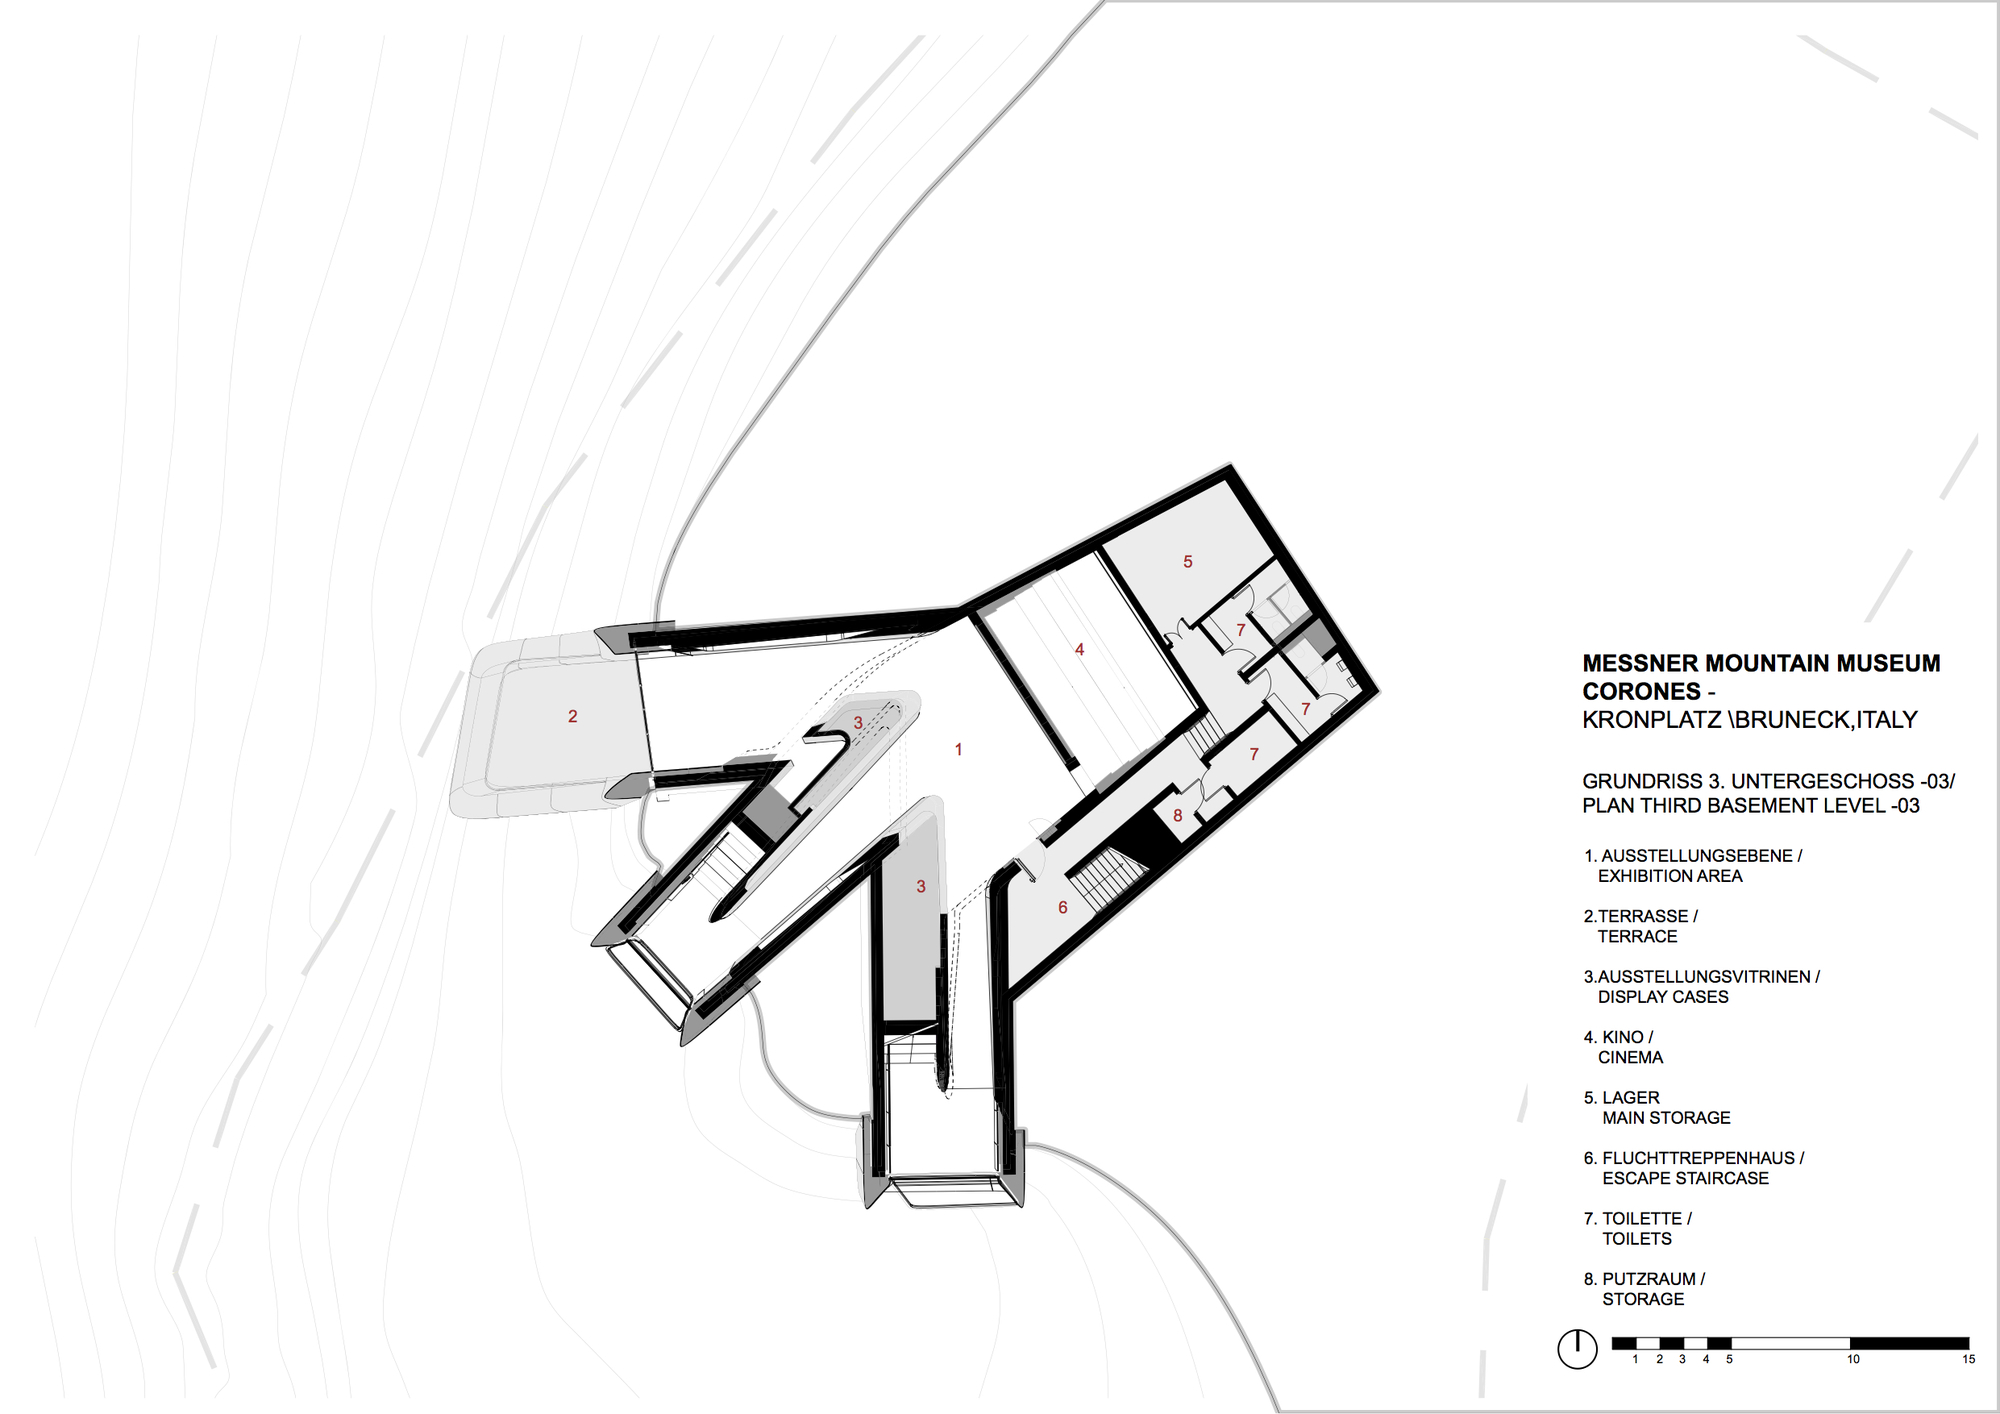 Imagenes as well 59a6a1d4b22e38a303000256 Huamark09 Building Inchan Atelier Second Floor Plan likewise 55bfef8de58ece0a2b00010e Messner Mountain Museum Corones Zaha Hadid Architects Plan Level 03 furthermore Cursorio together with 8085. on size